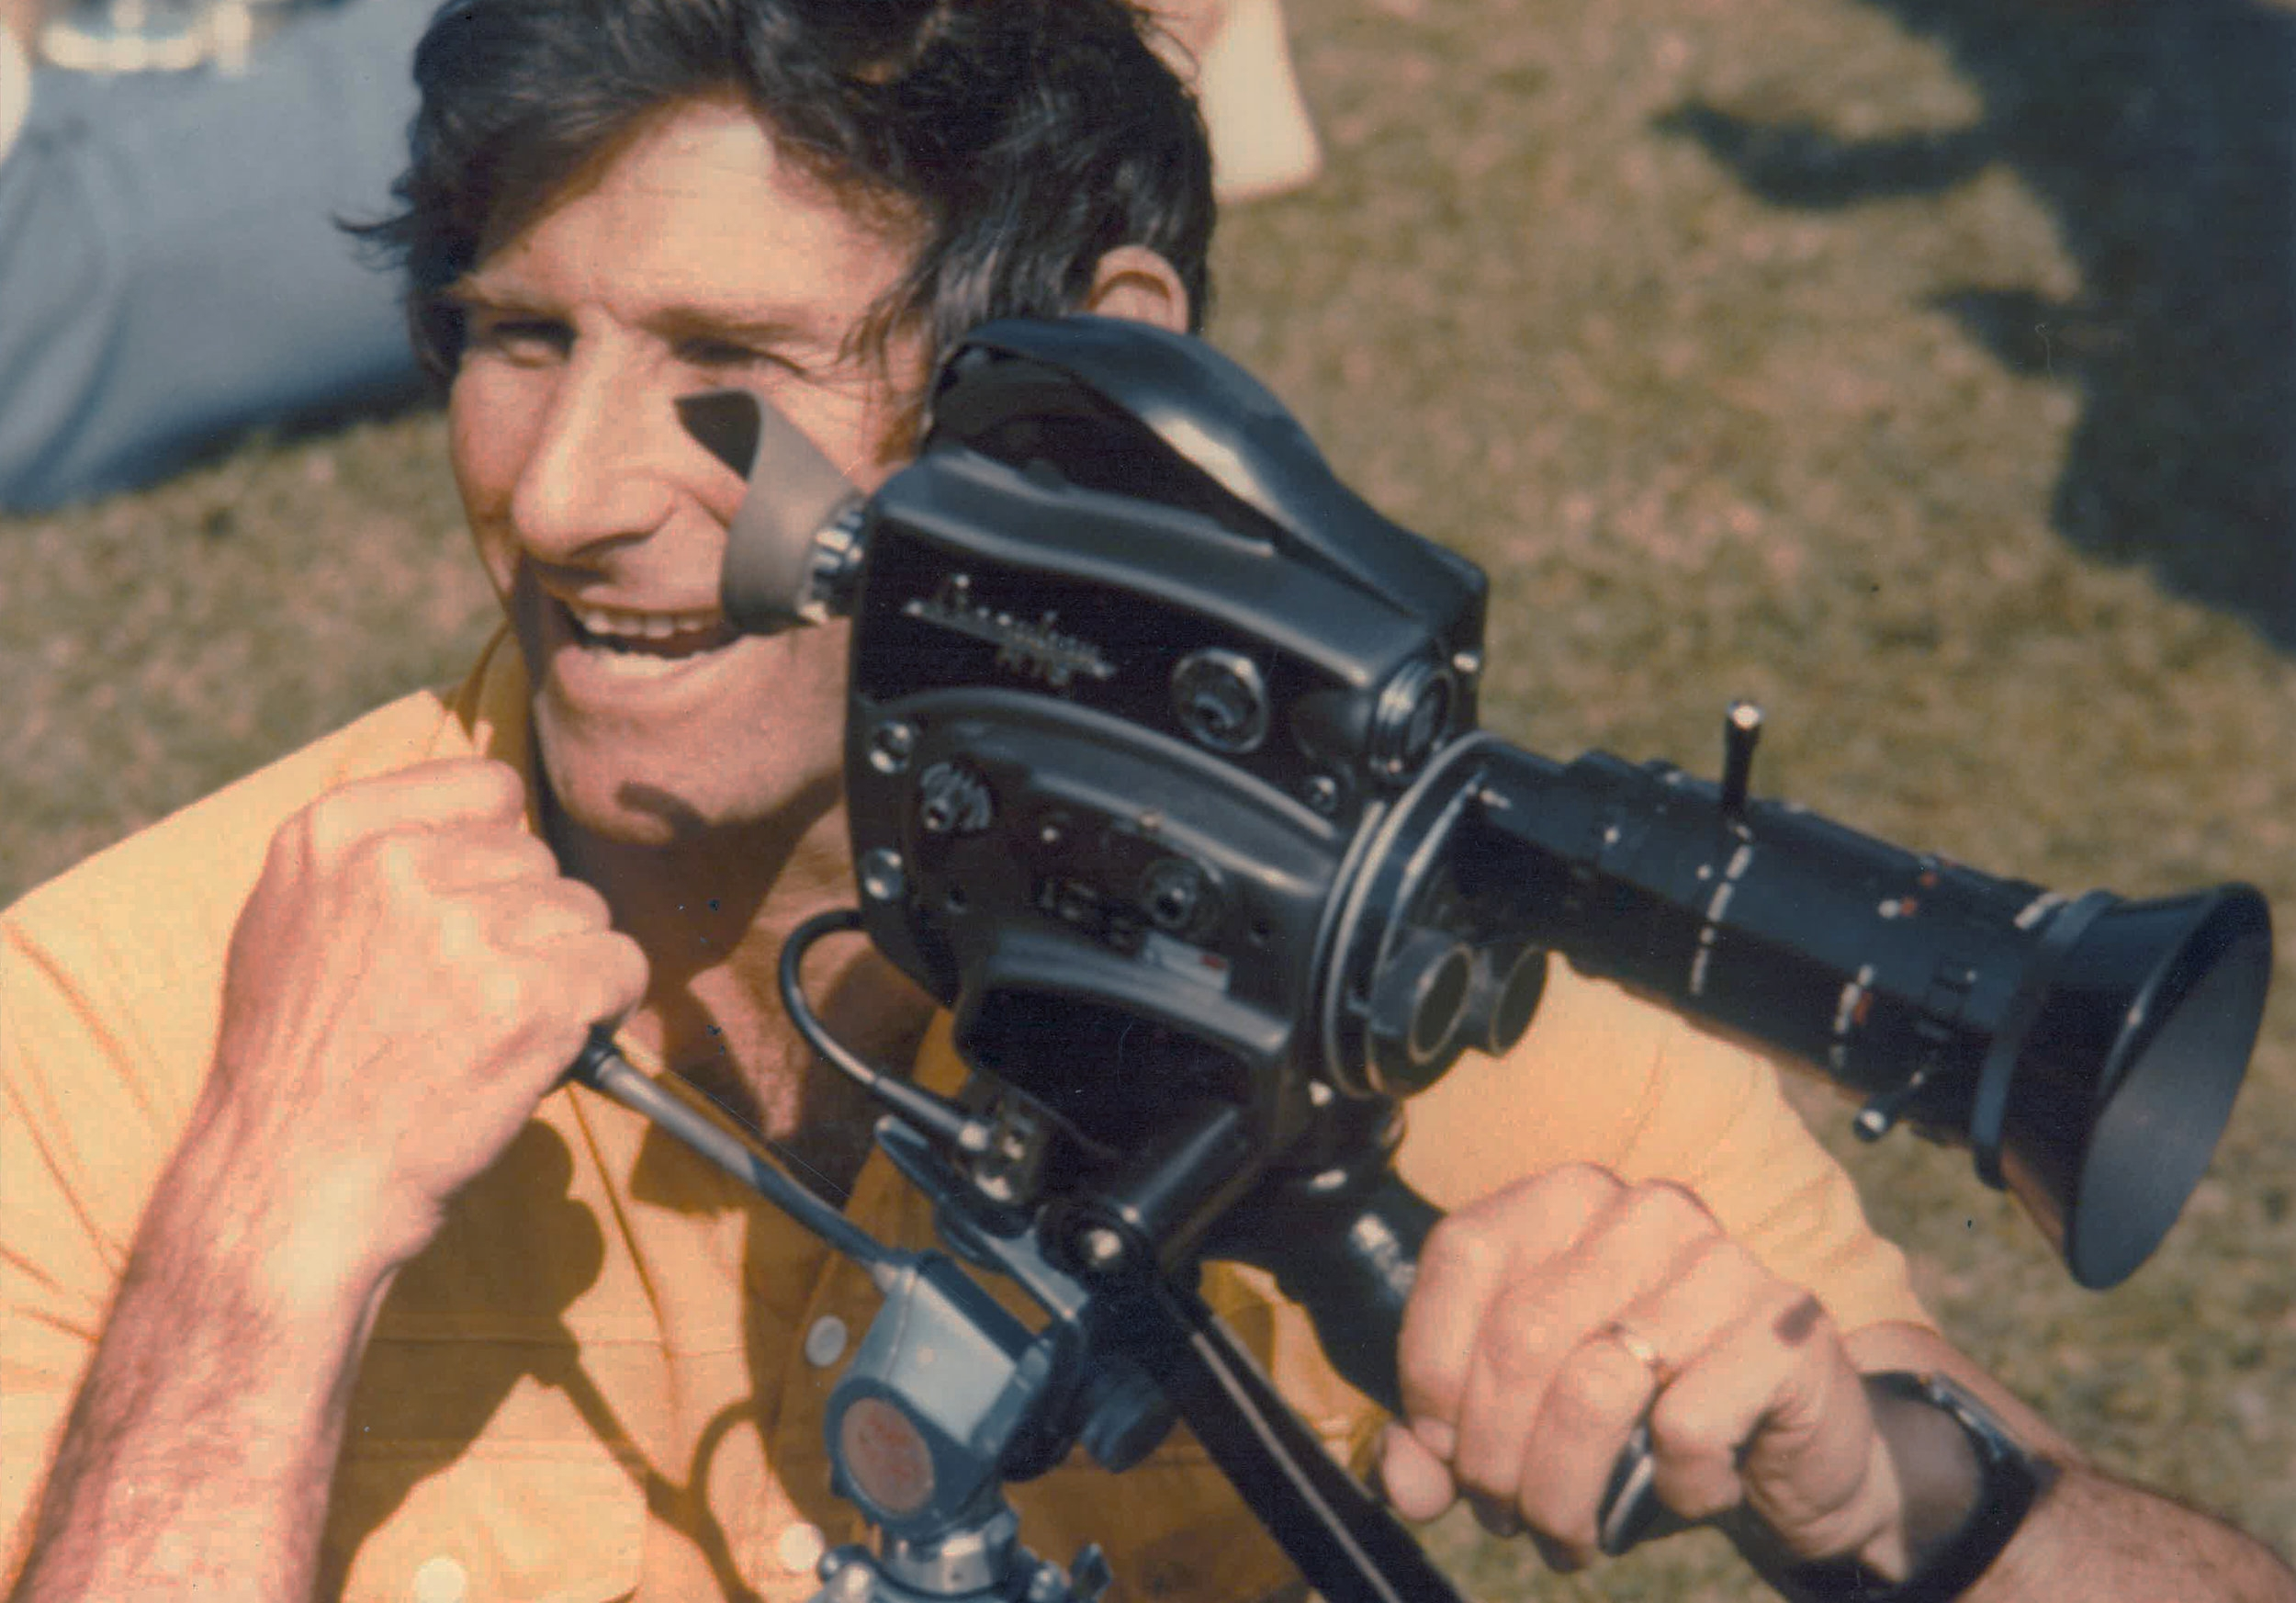 Michael Slowe in 1976 with 16mm Film Camera